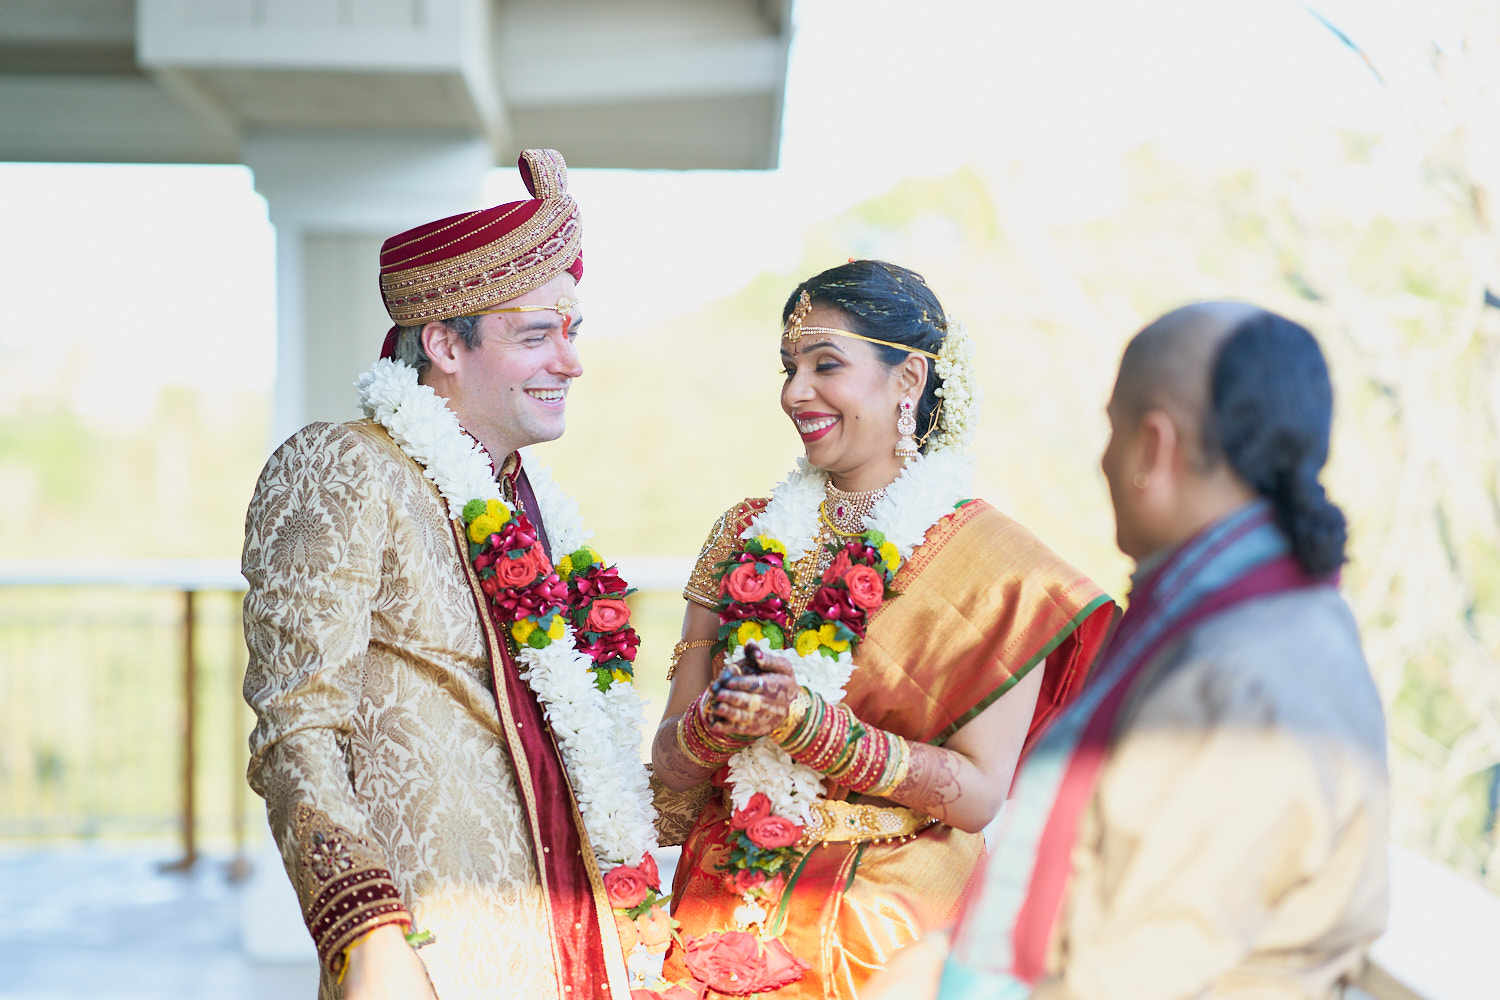 south-indian-wedding-ceremony-photography-by-afewgoodclicks-net-in-saratoga 289.jpg